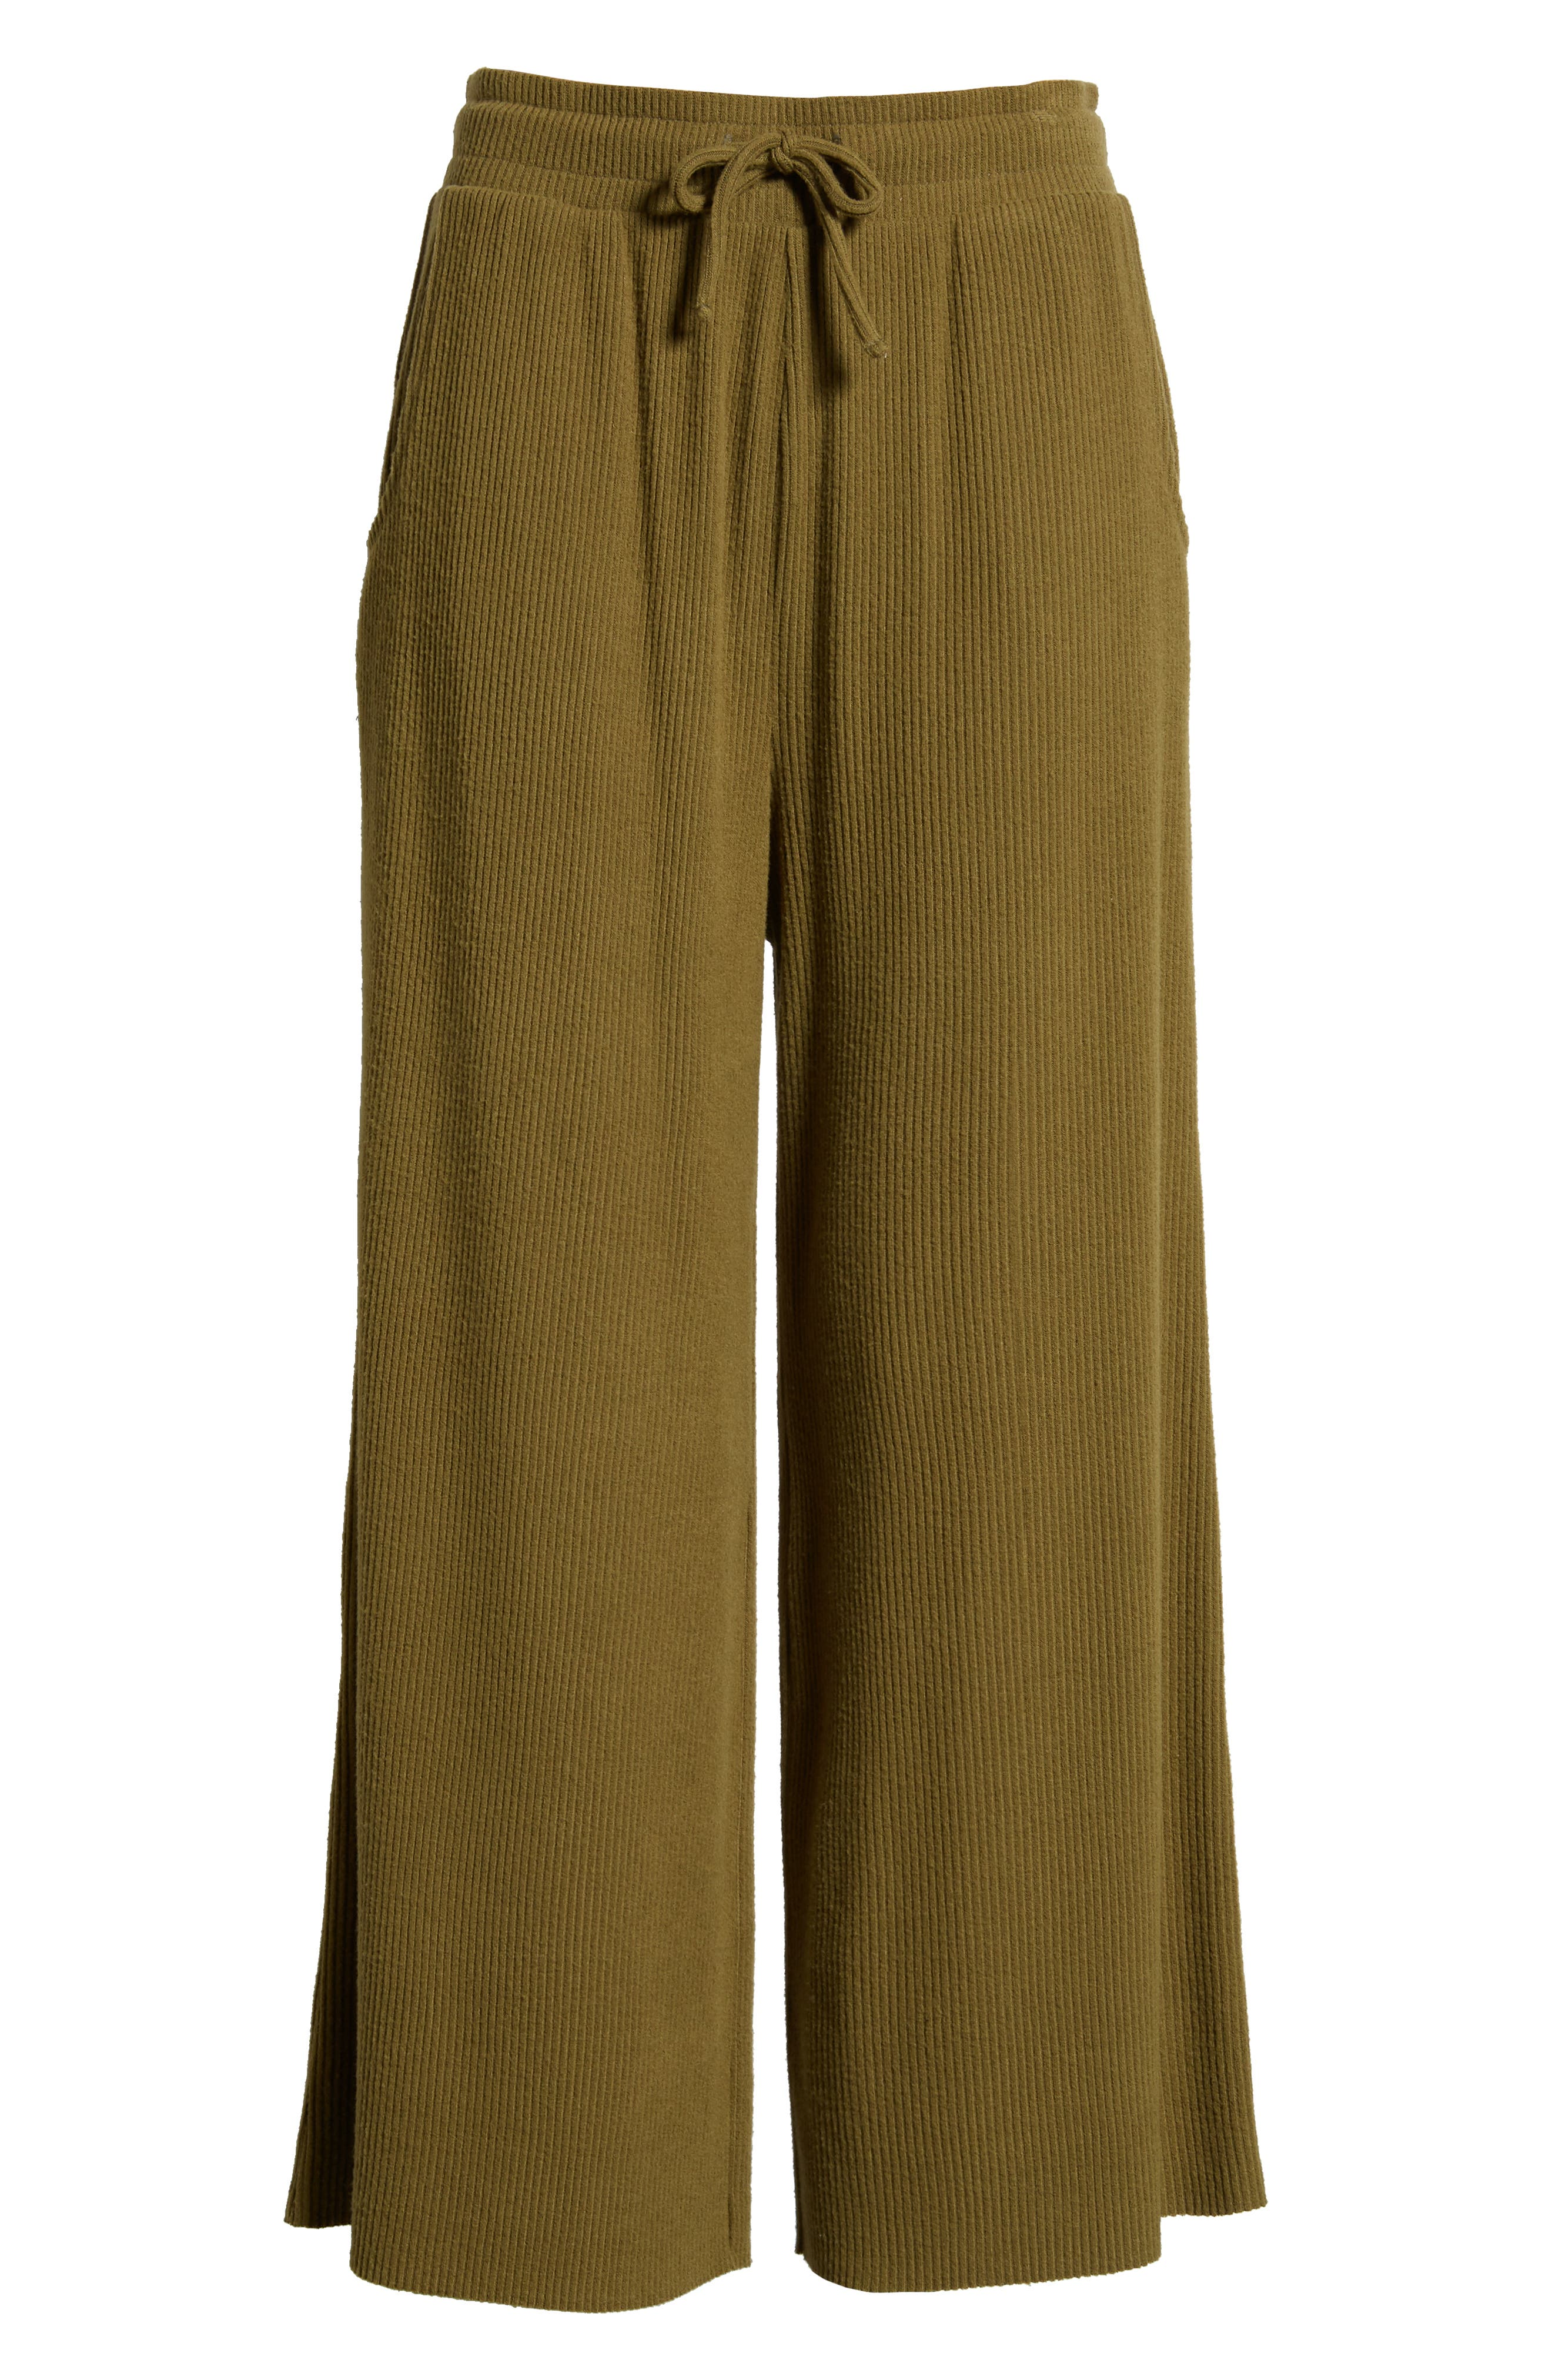 Ribbed Wide Leg Crop Pants,                             Alternate thumbnail 7, color,                             OLIVE ITALY